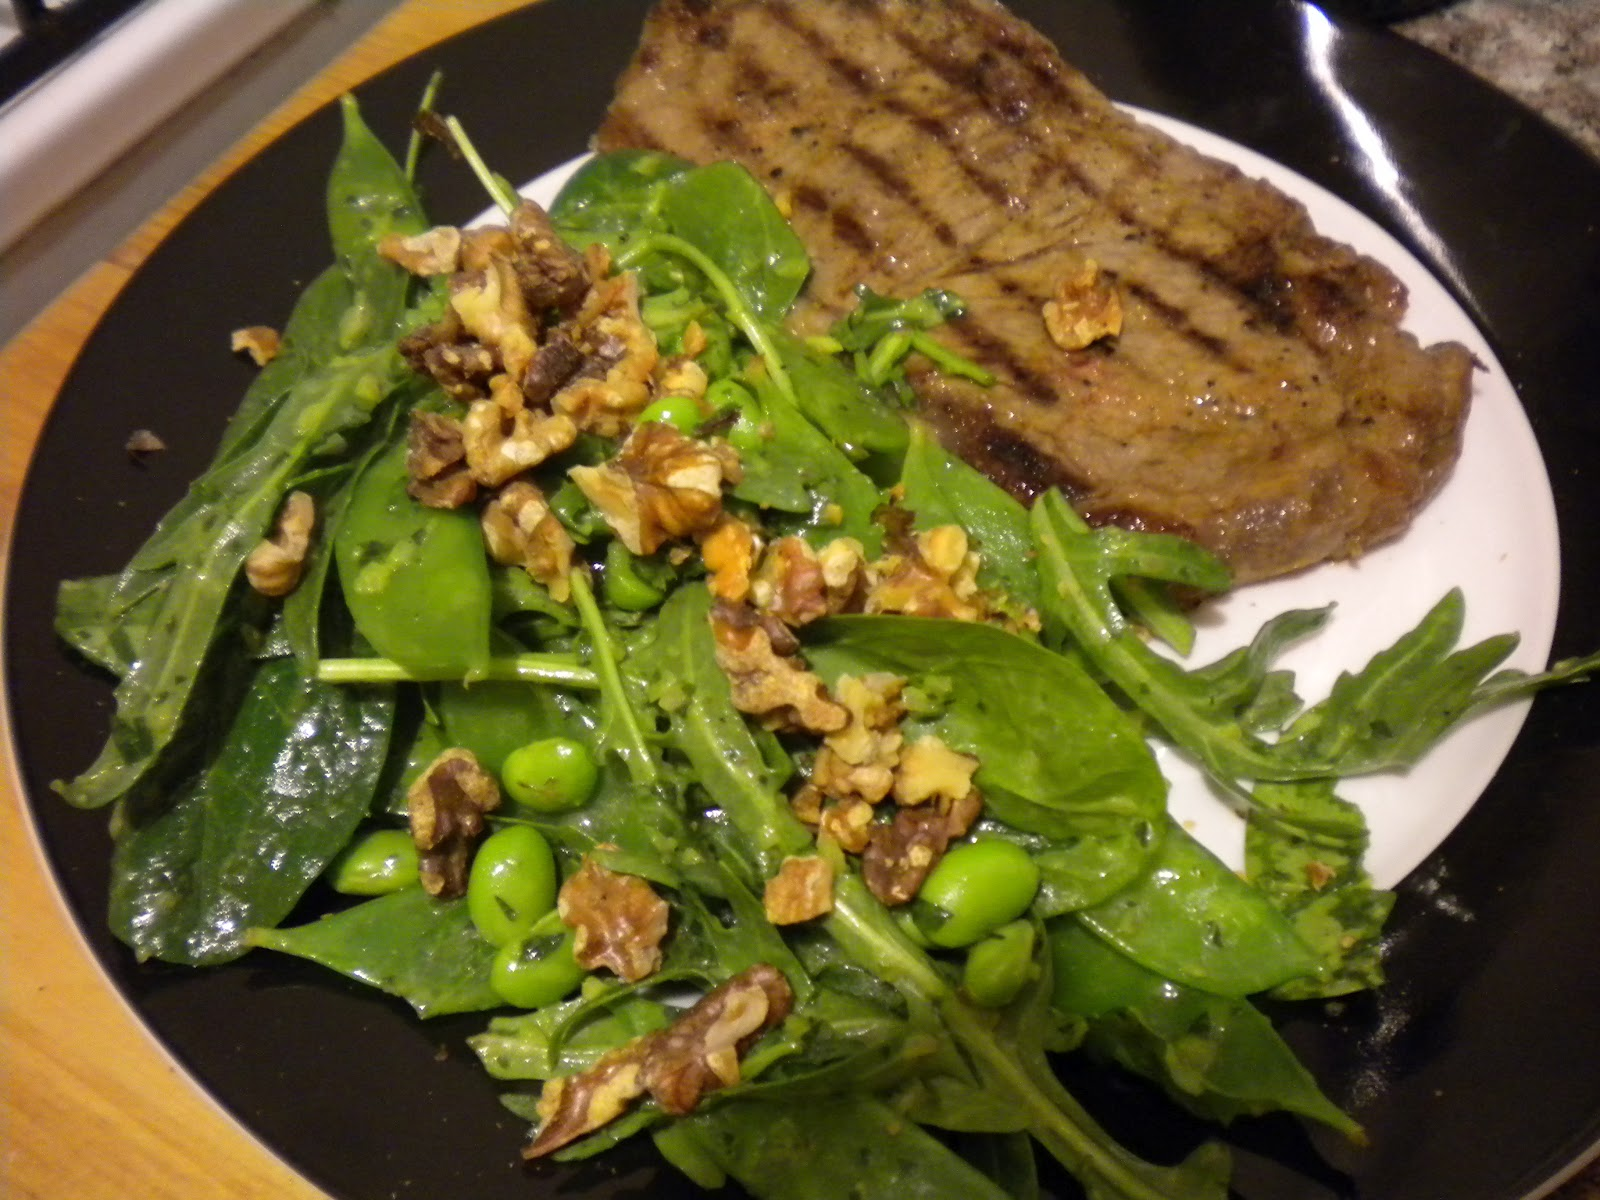 want that...: Pea Shoot and Walnut Salad with Homemade Dressing